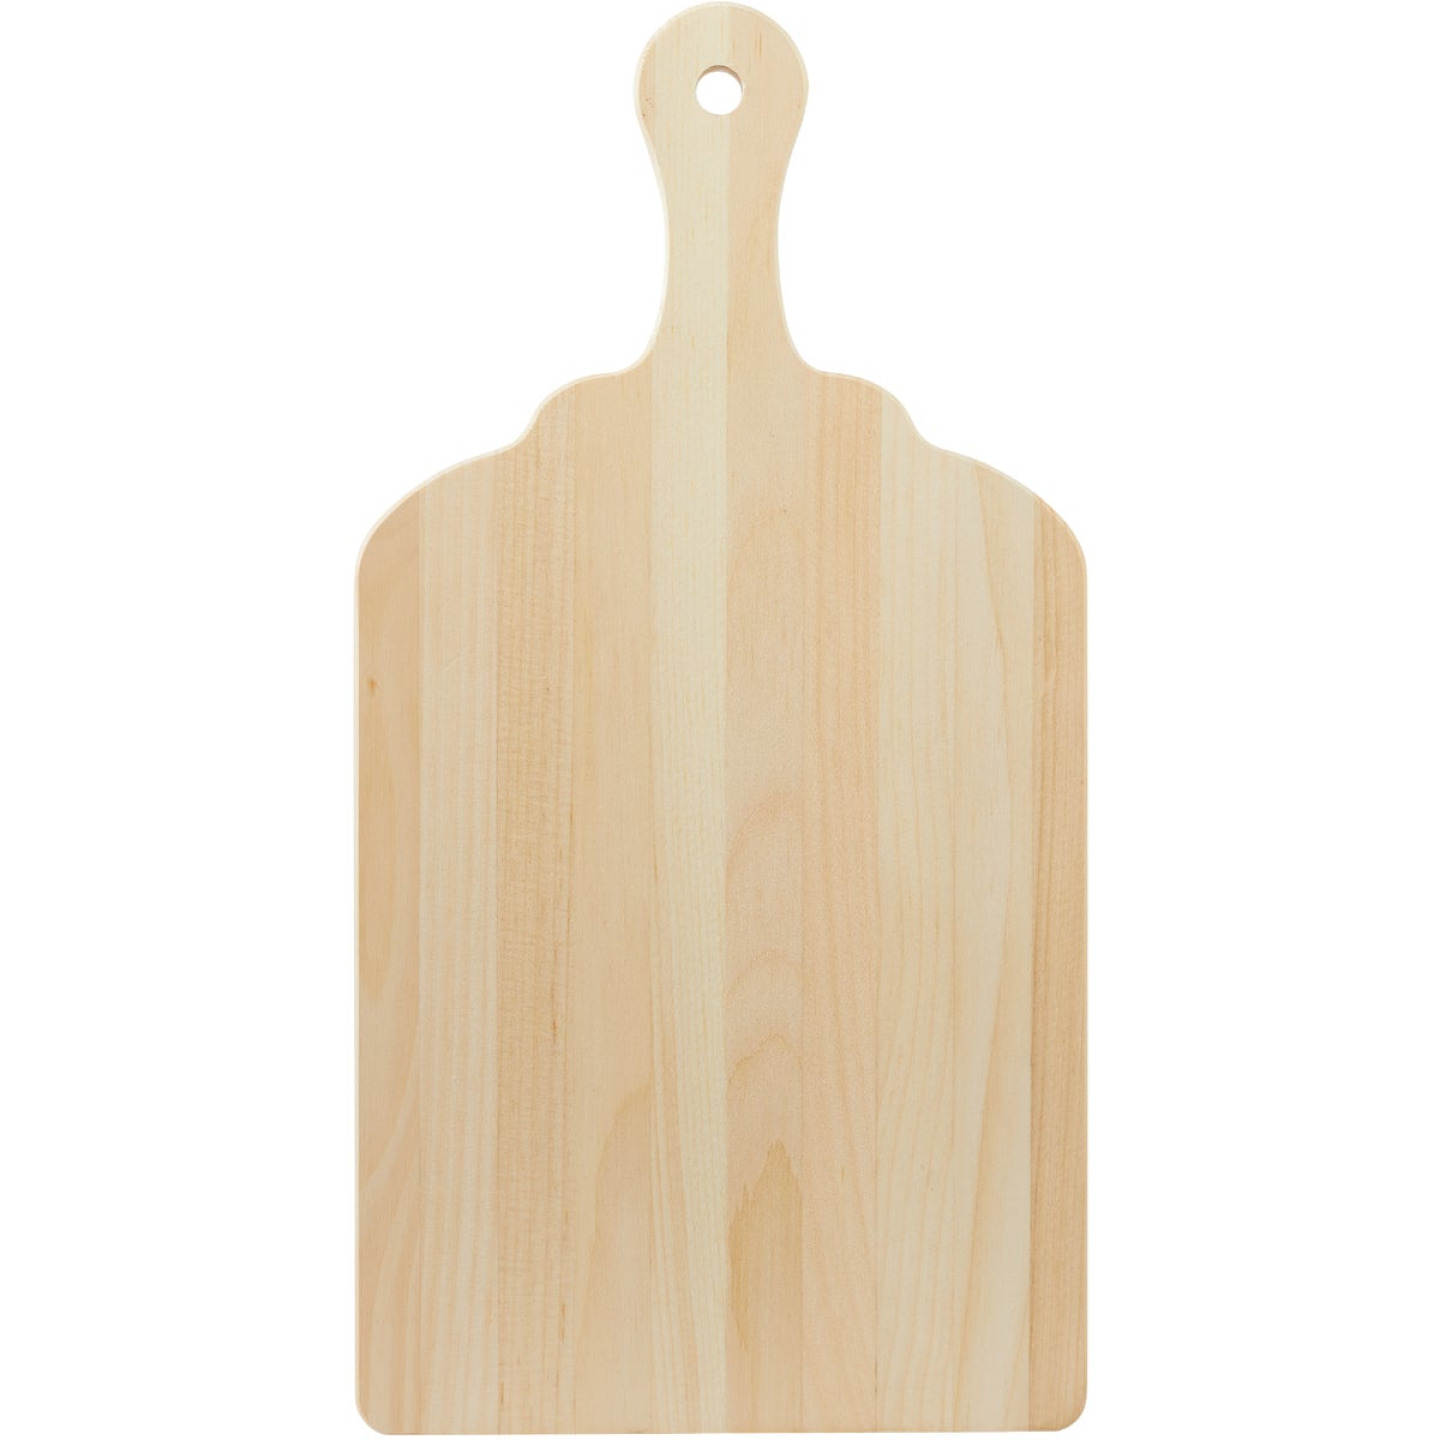 Walnut Hollow 7 In. x 14 In. Unfinished Wood Serving Board Image 2